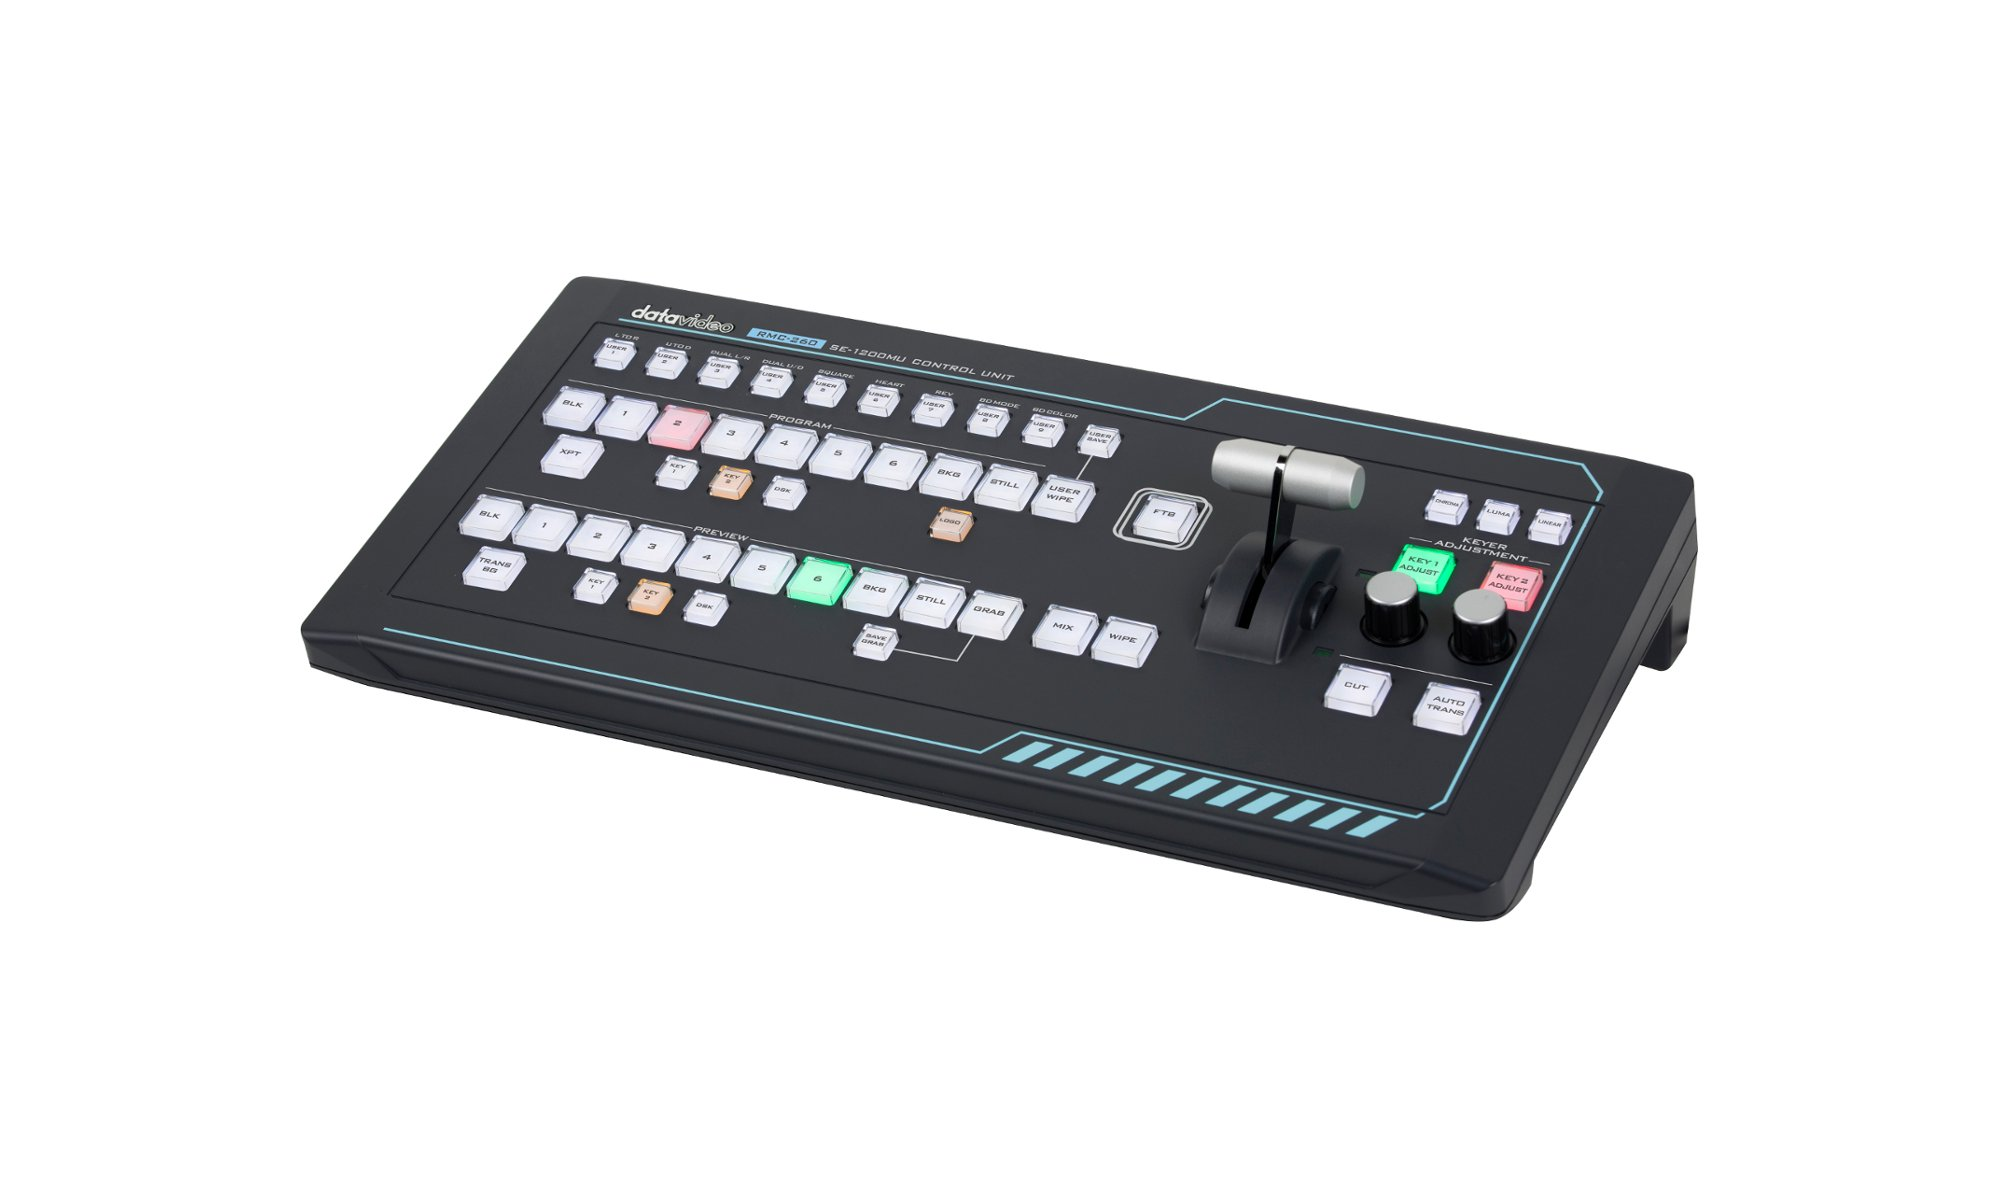 SE-1200MU 6 Input Switcher, RMC-260 Controller Bundle